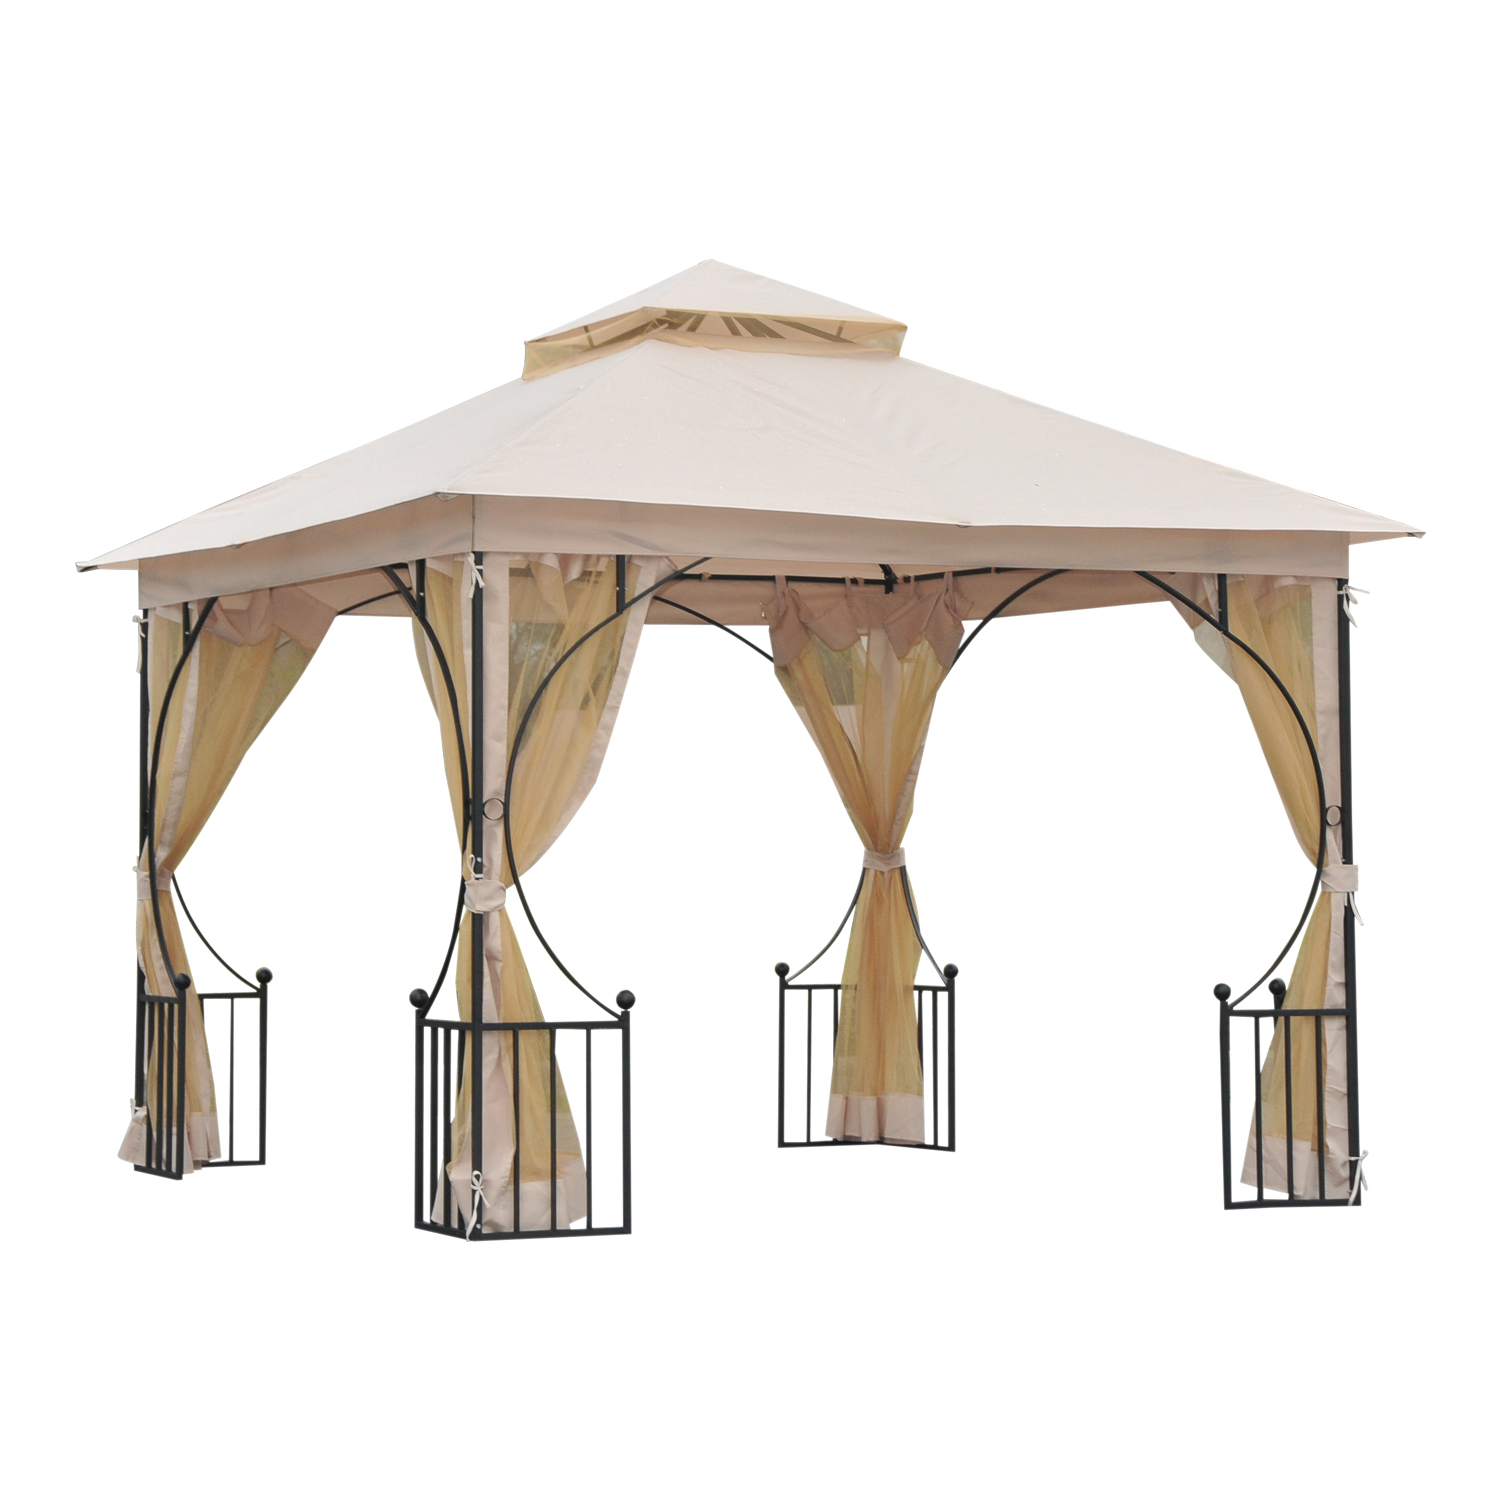 outsunny 10 x 10 steel outdoor garden patio gazebo canopy with mosquito netting walls